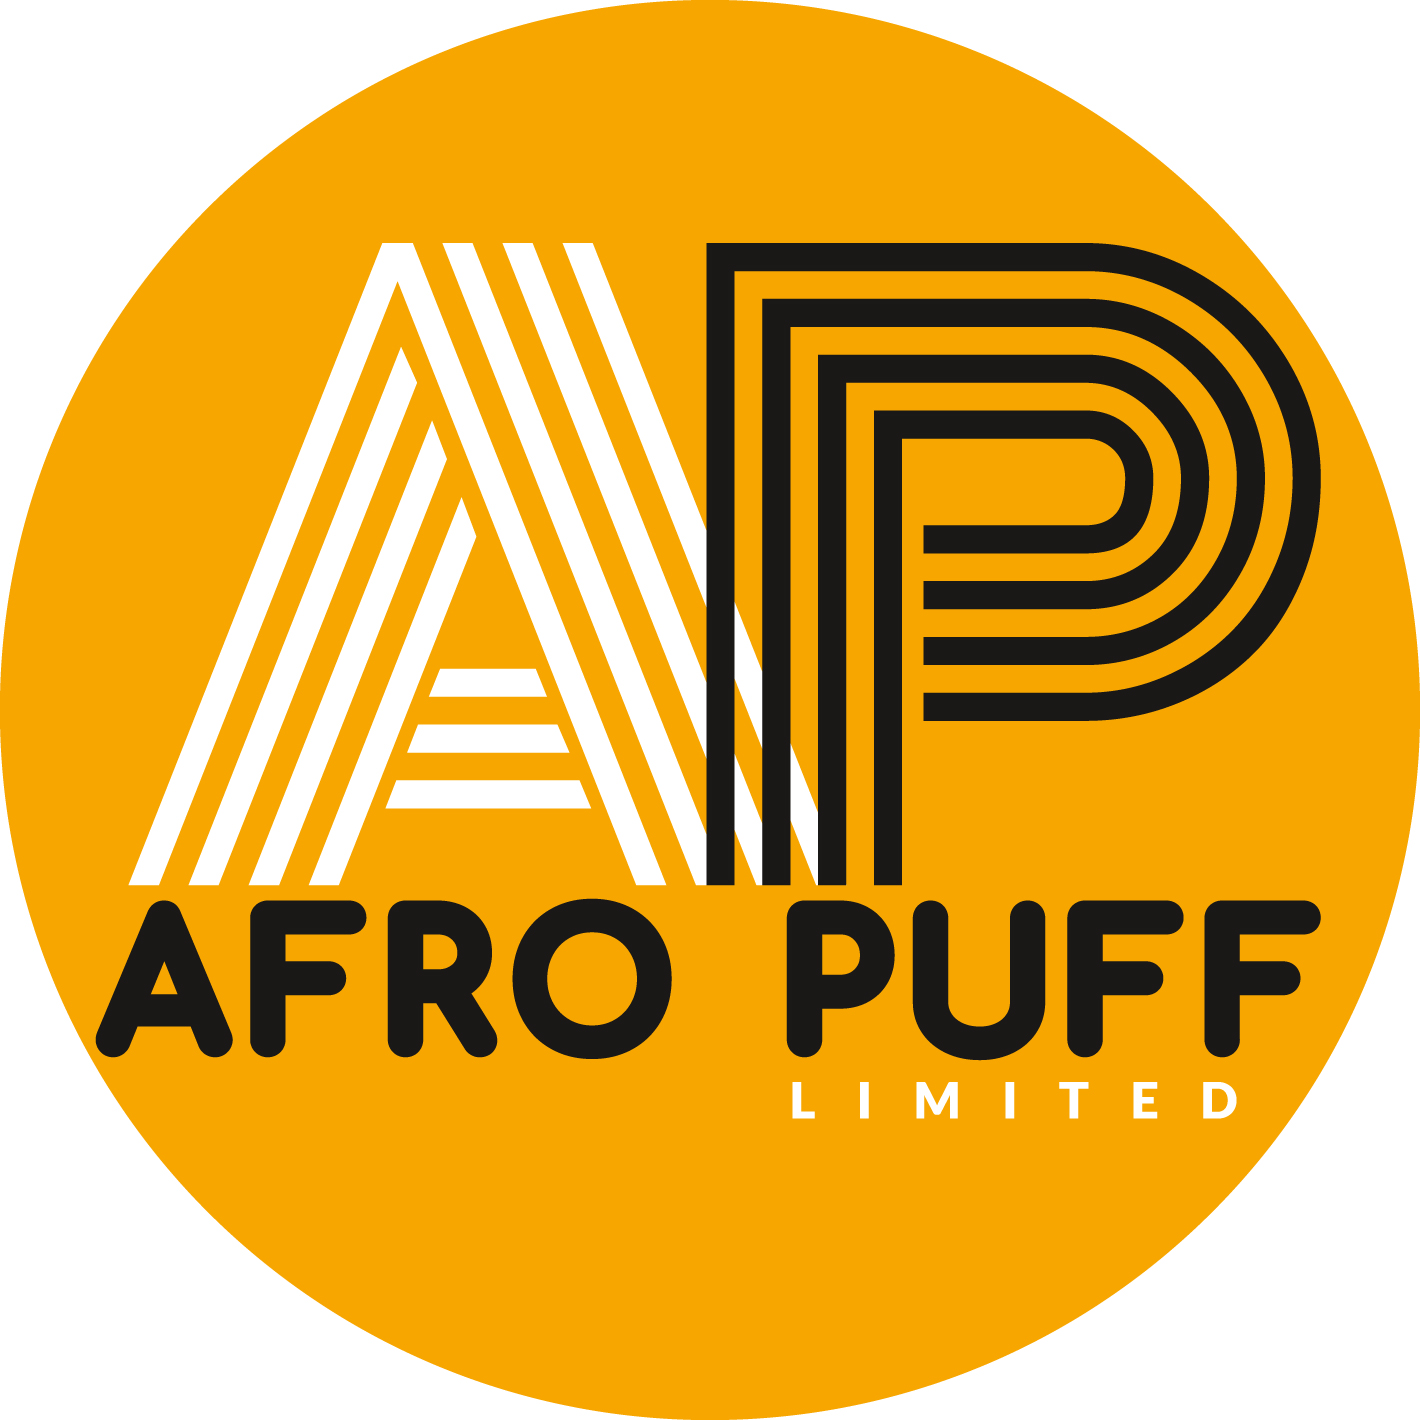 Logo for fashion brand Afro Puff